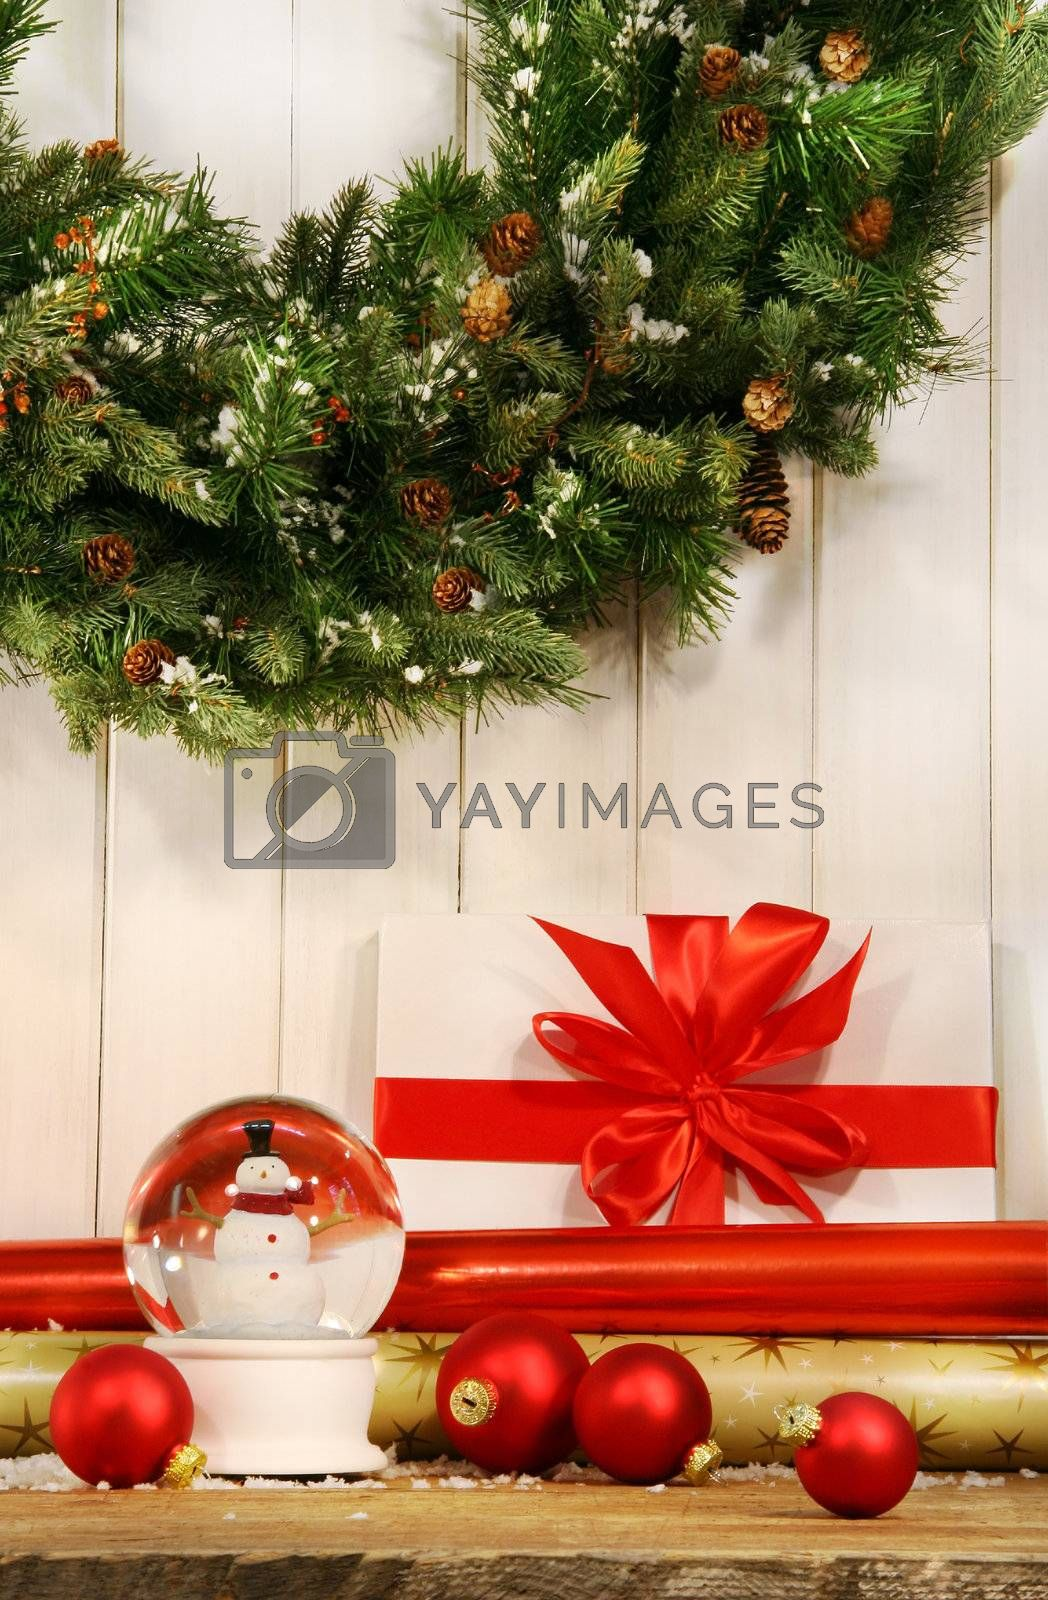 Holiday wreath with snow globe  by Sandralise